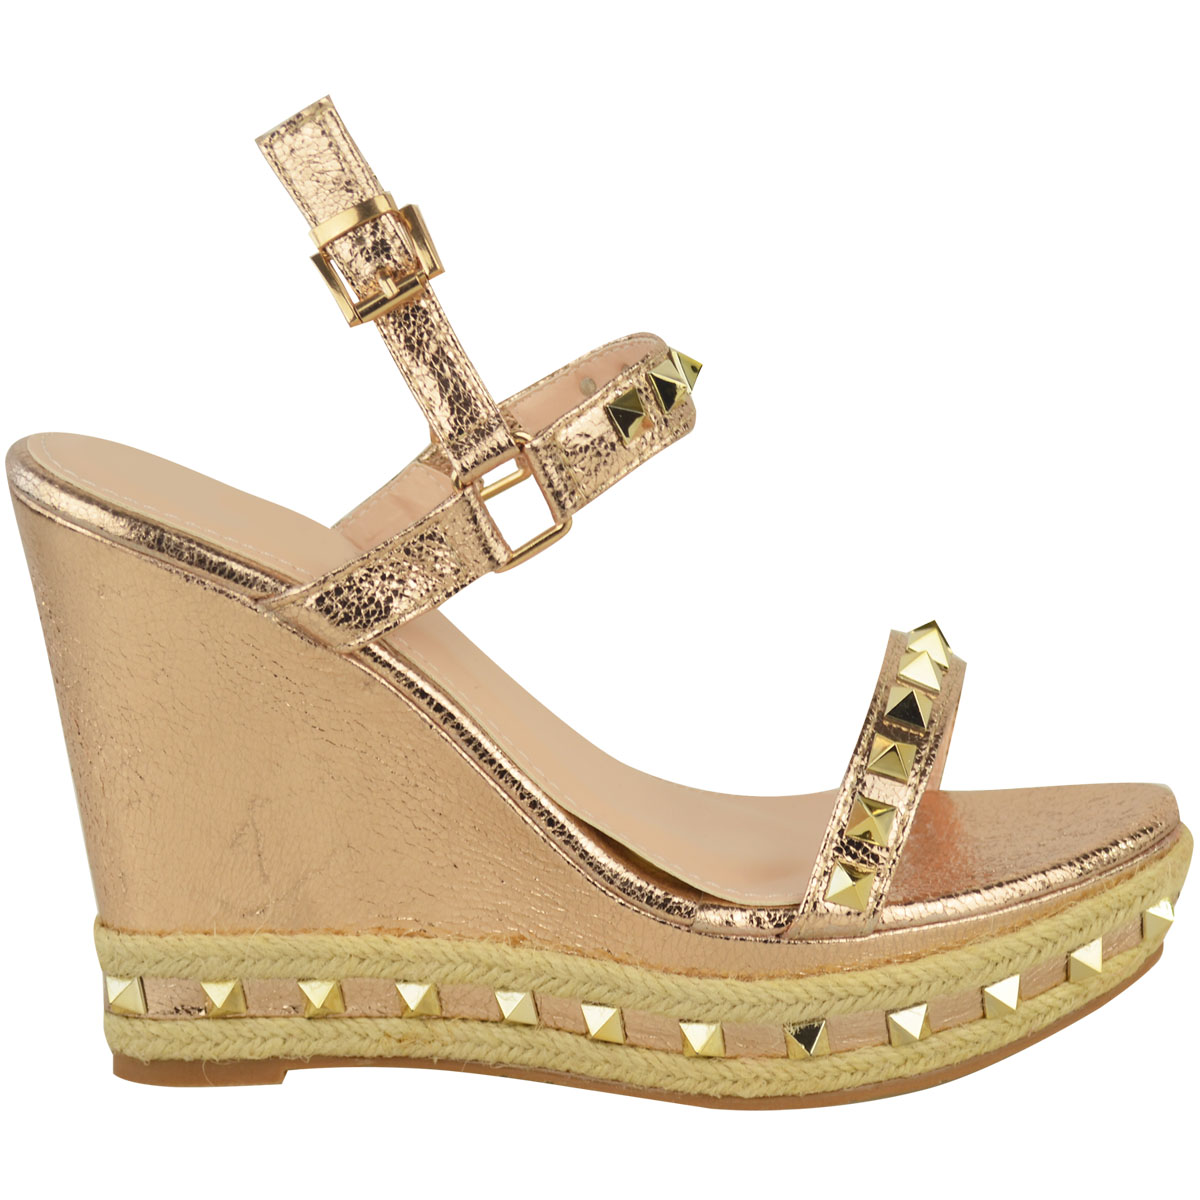 526fa74c2 Womens Ladies Rose Gold Stud Wedge Summer Sandals Ankle Strap ...